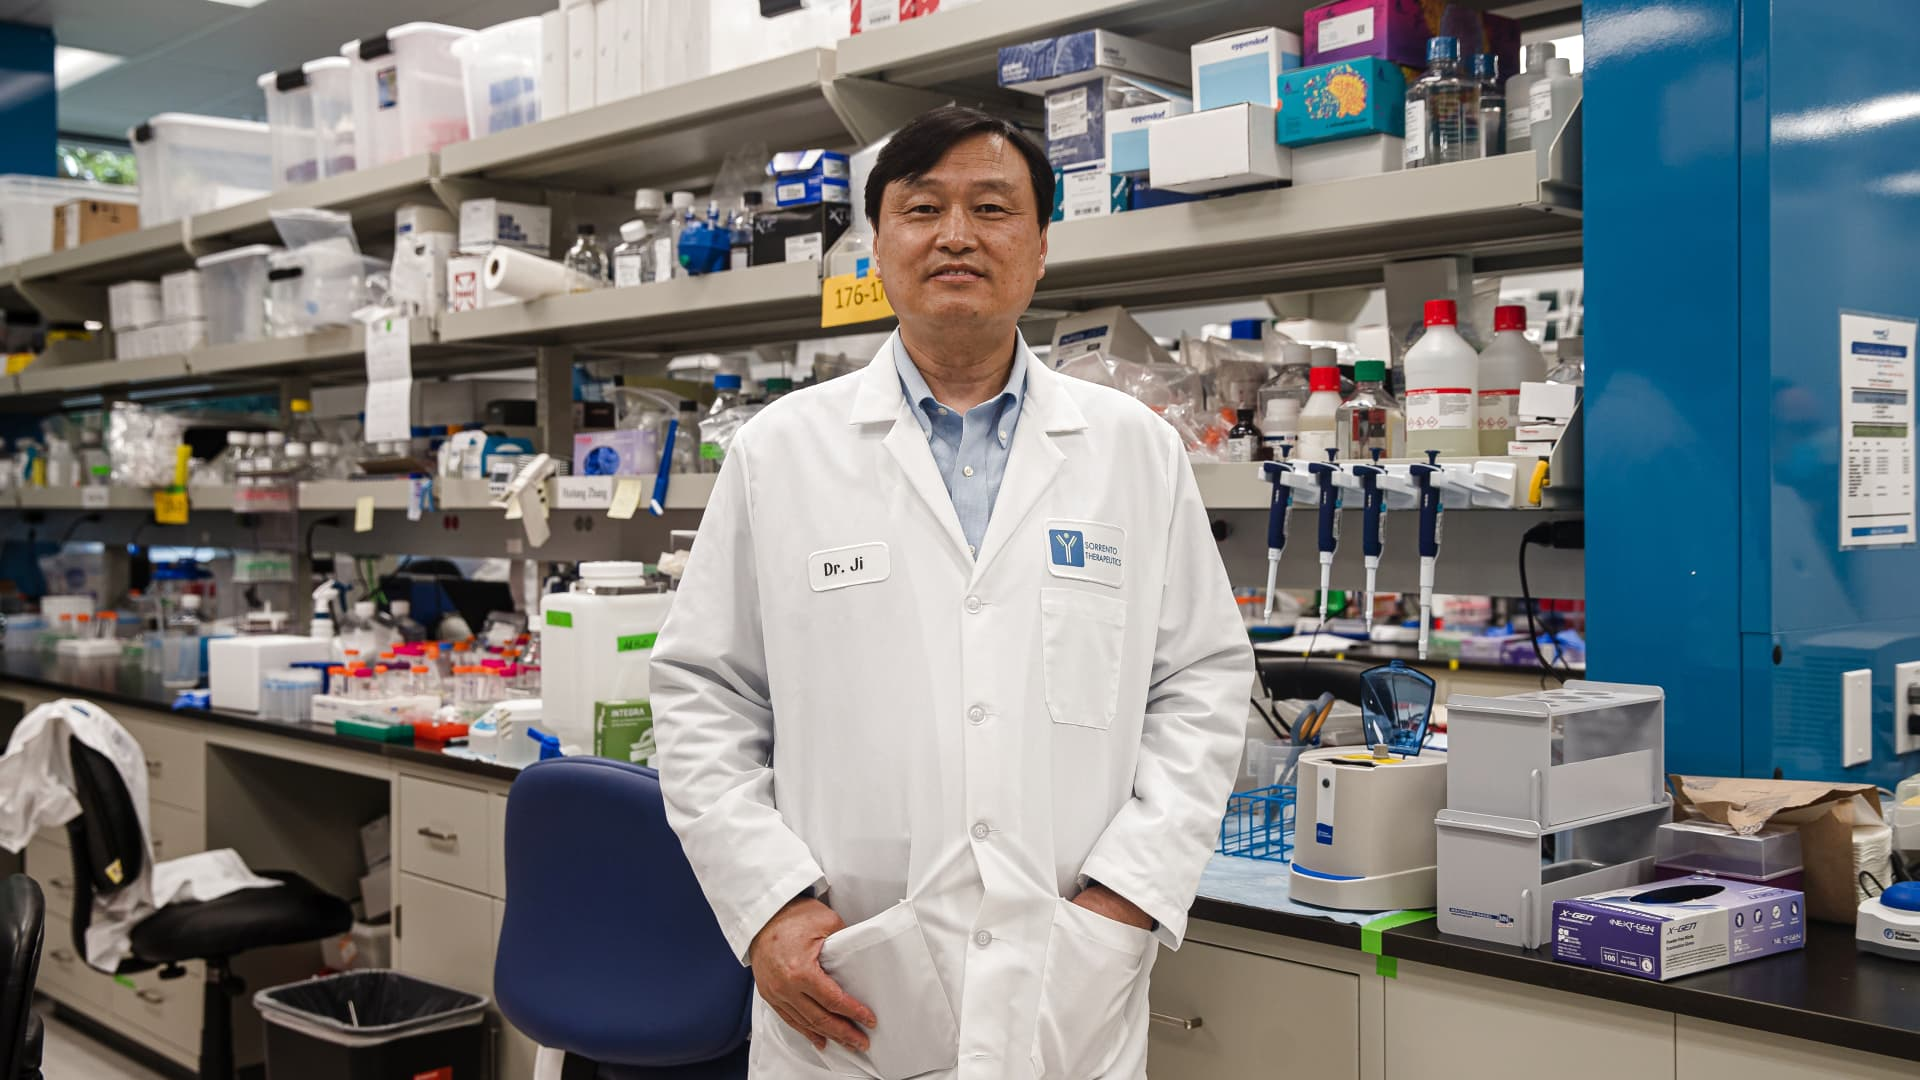 Dr. Henry Ji, Chairman, President and Chief Executive Officer stands in the lab at Sorrento Therapeutics in San Diego, California on May 22, 2020.